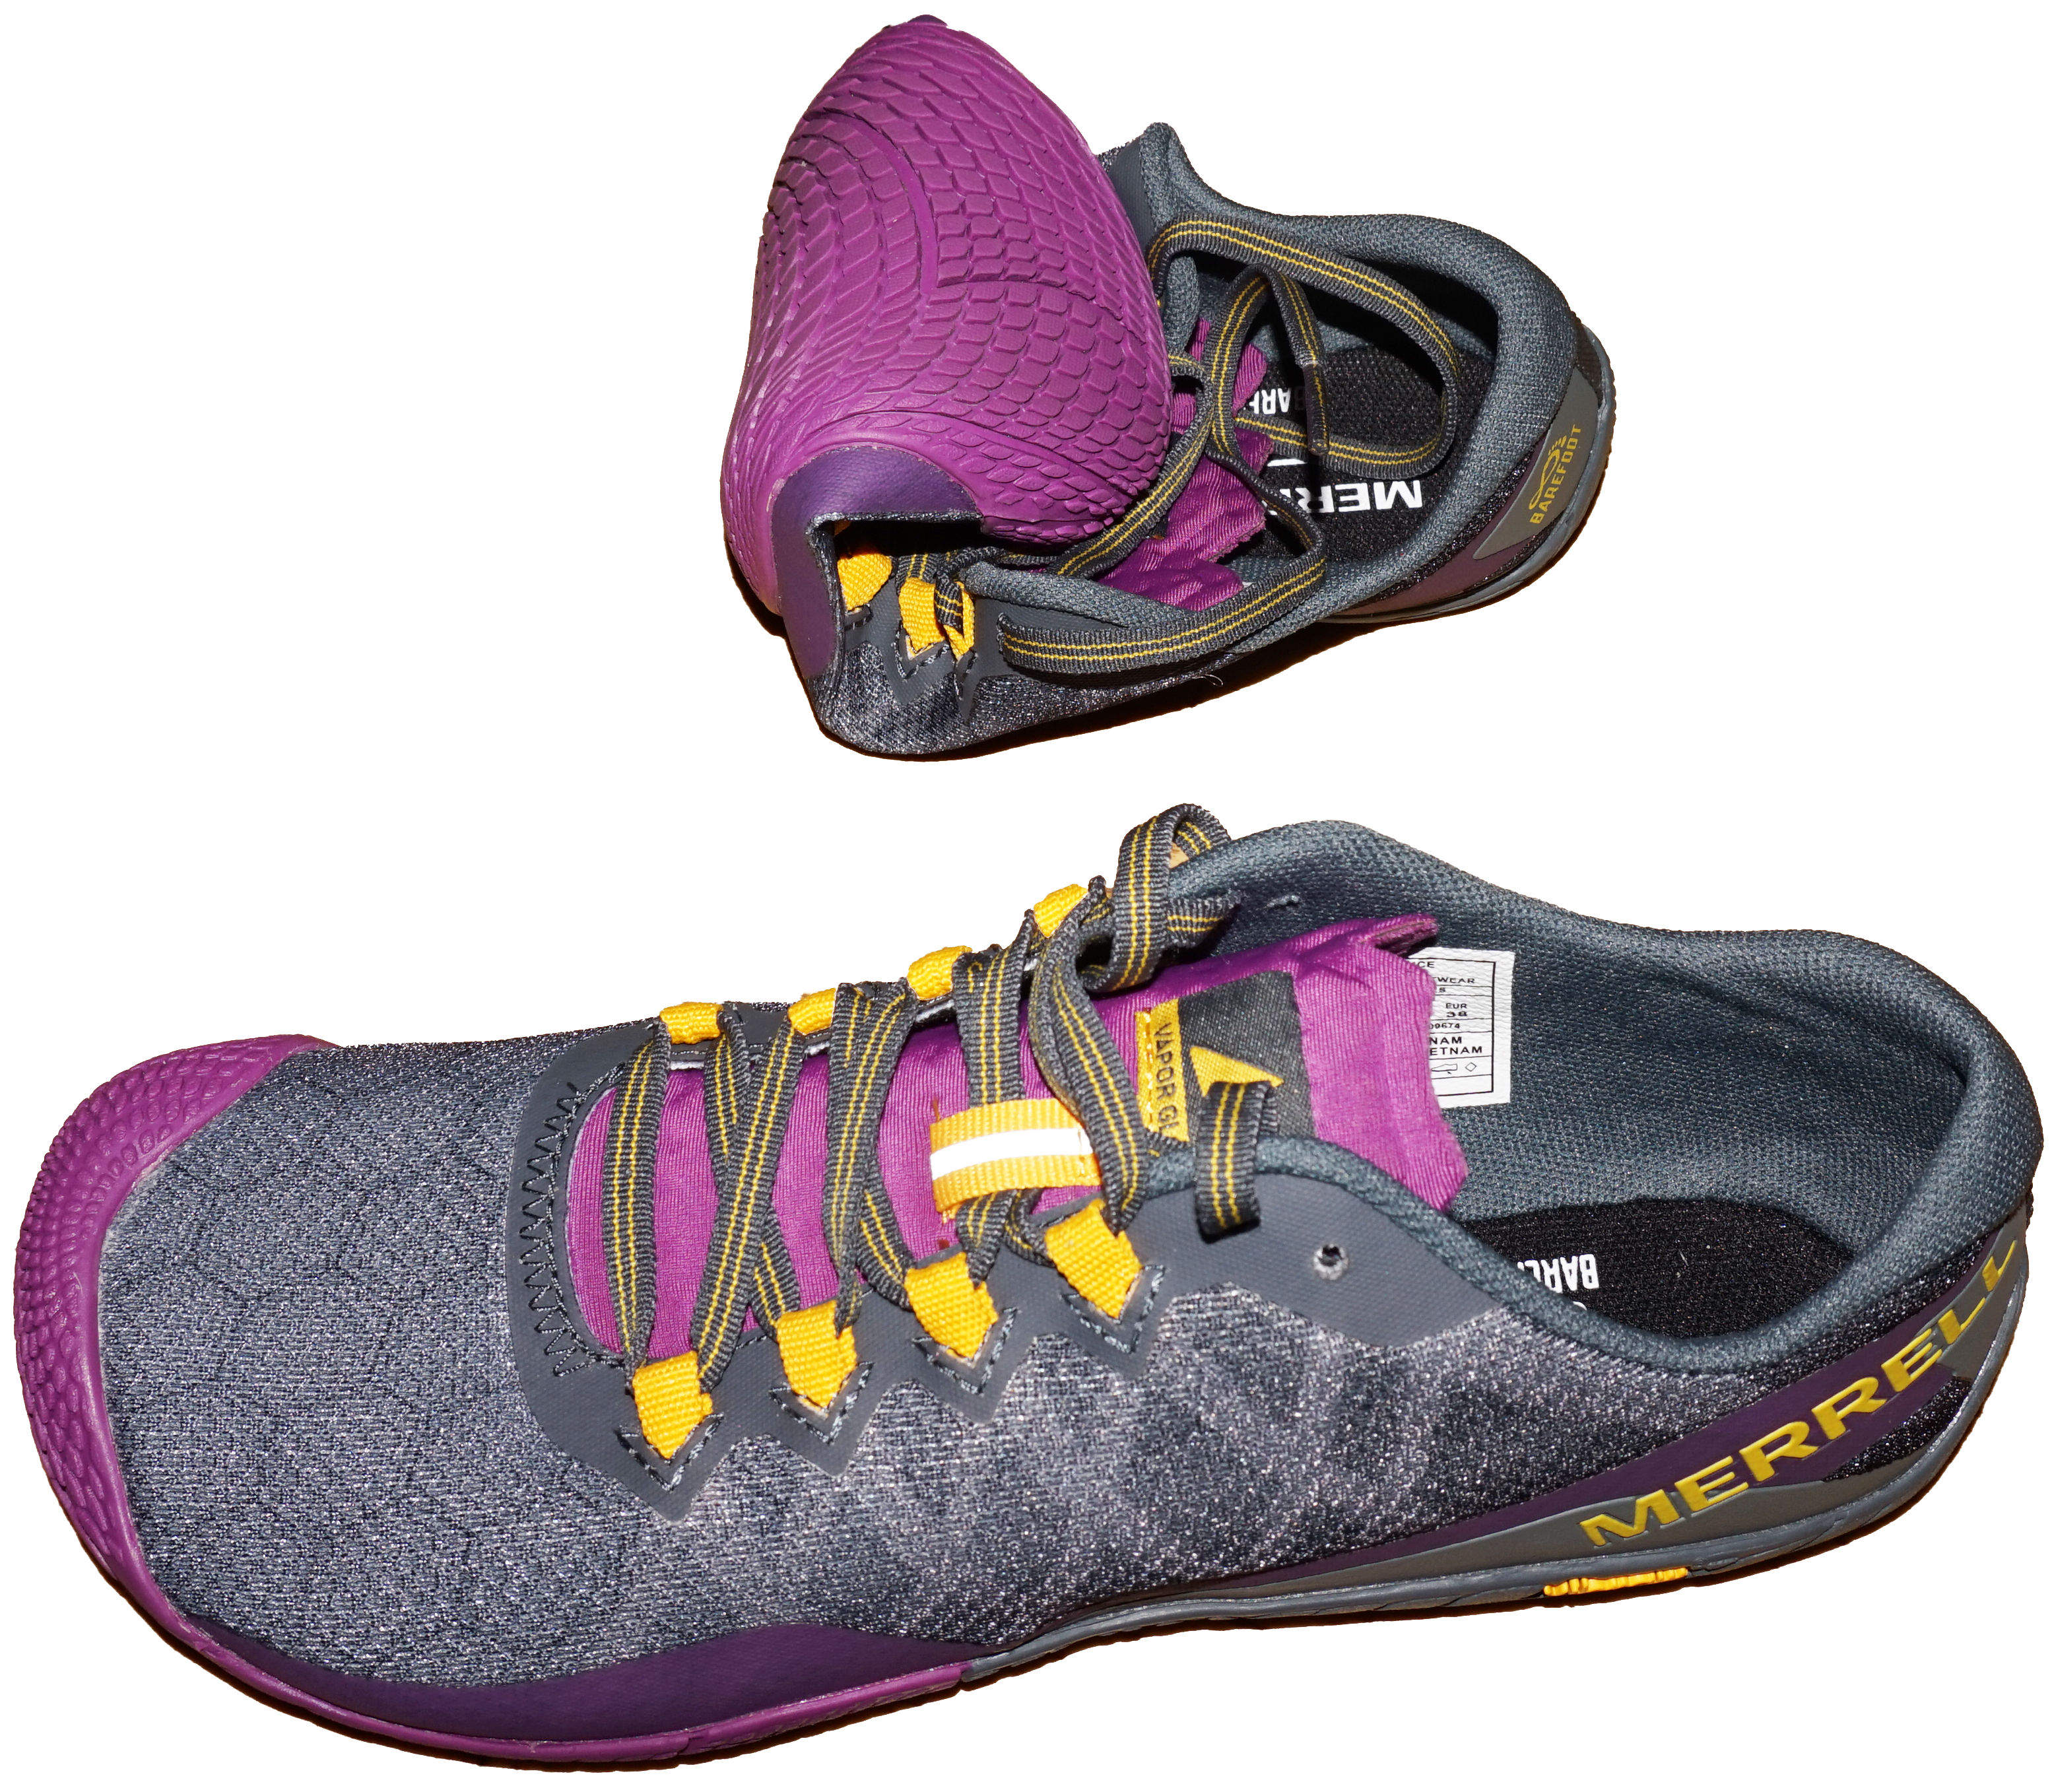 File:Merrell Vapor Glove 3 shoes.png Wikimedia Commons